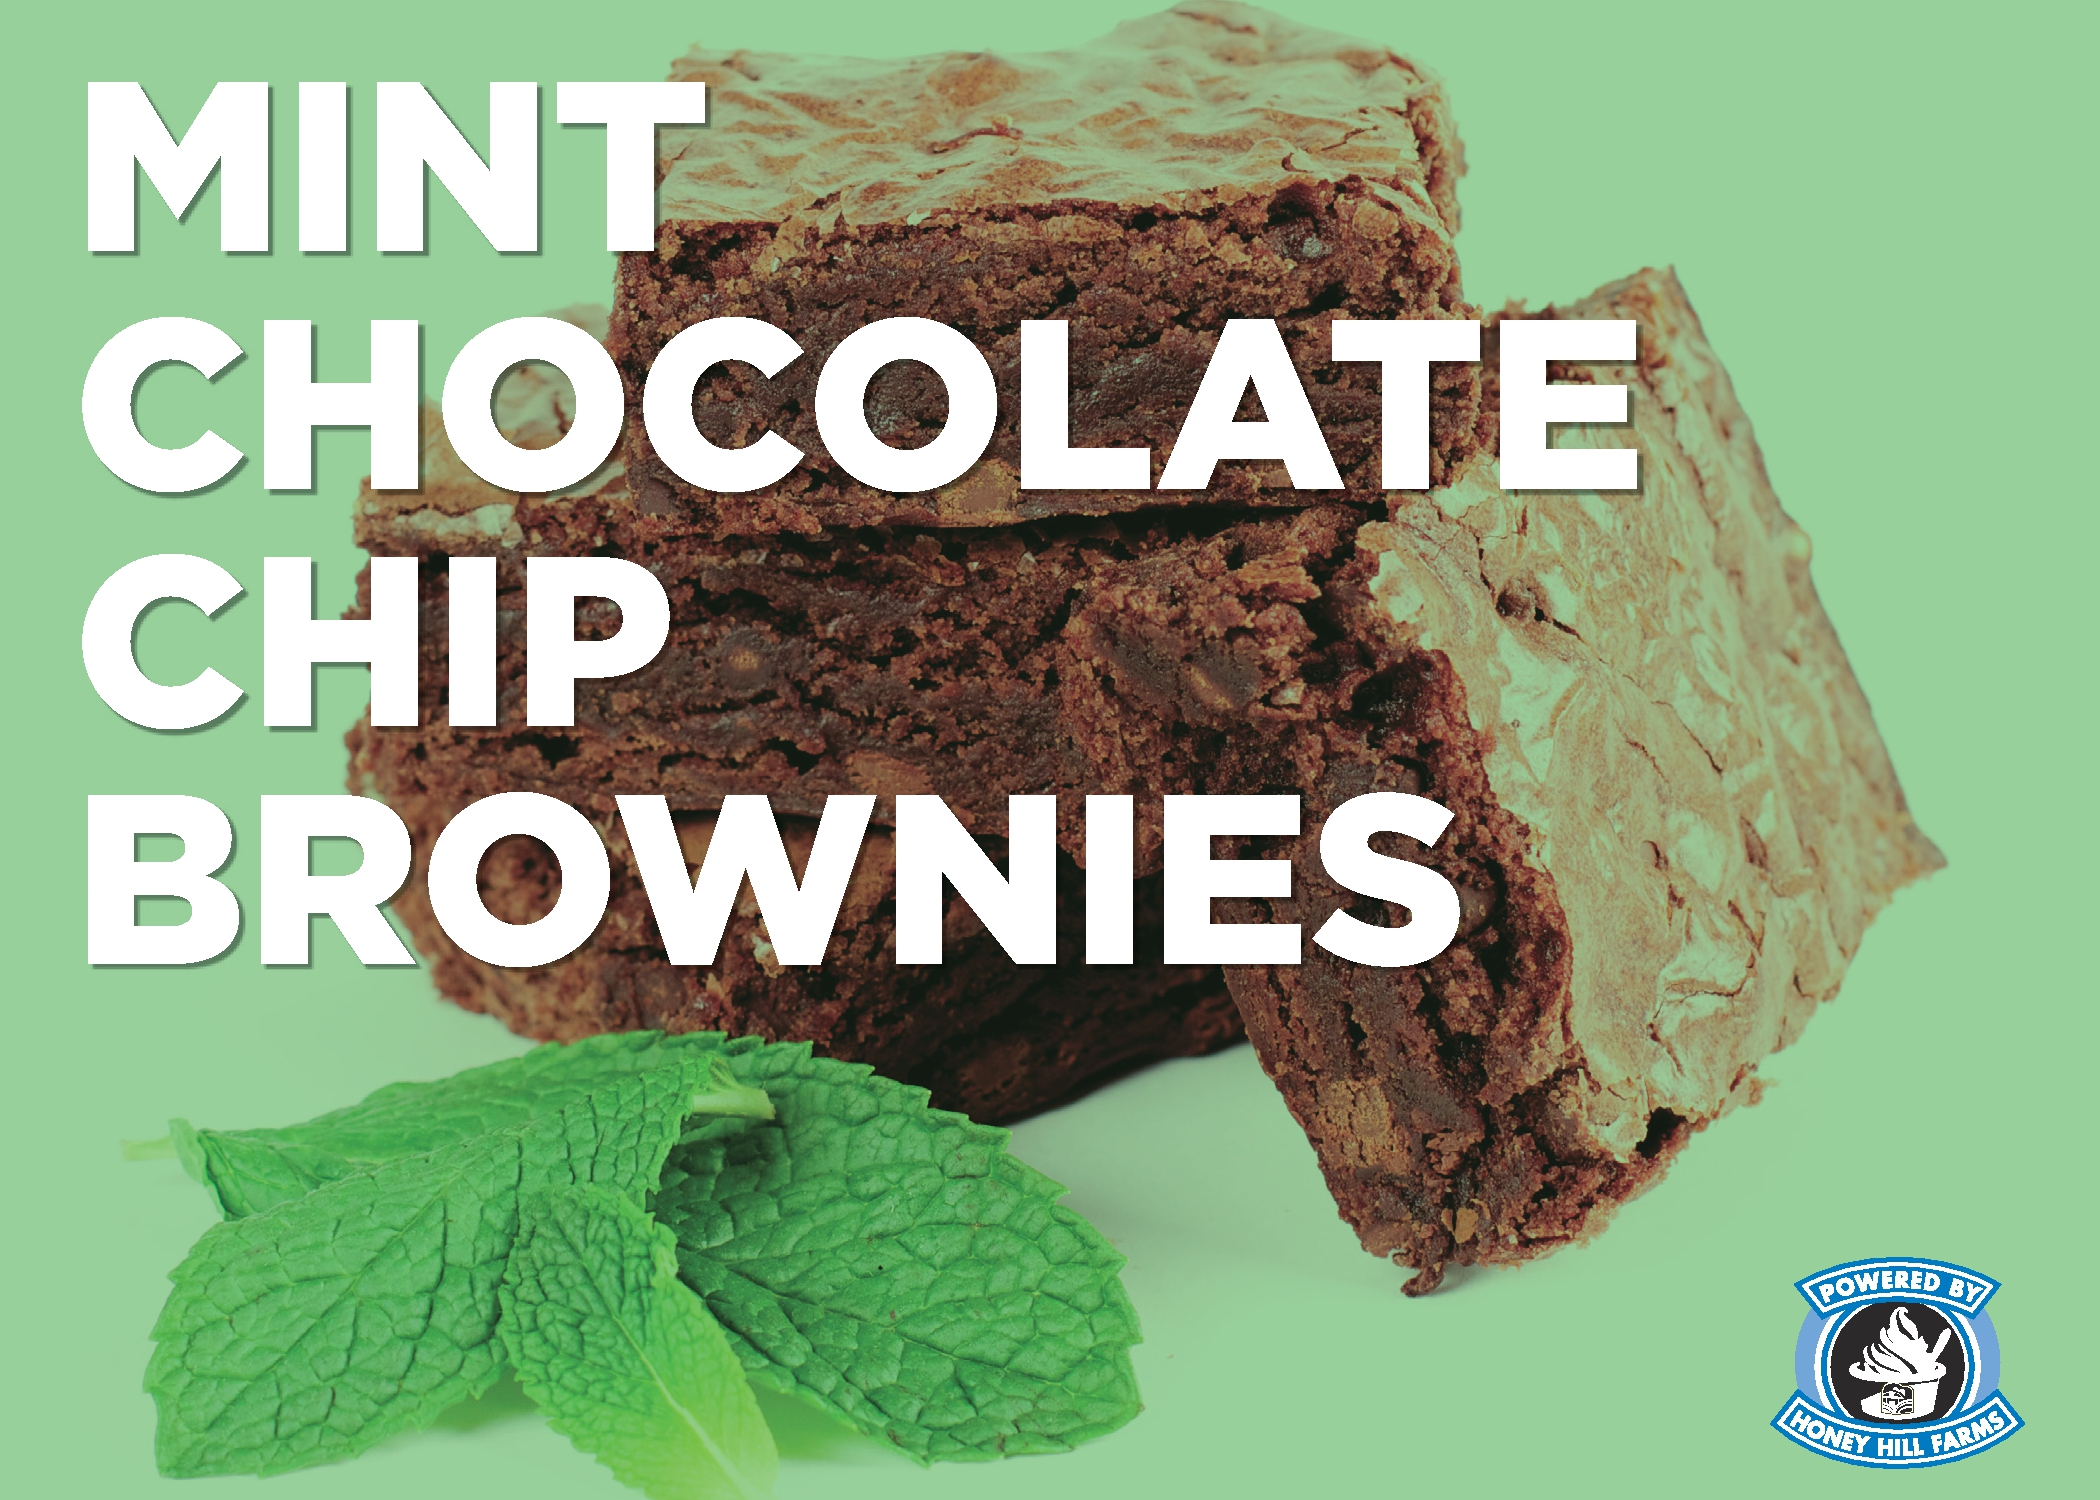 Mint Chocolate Chip Brownies